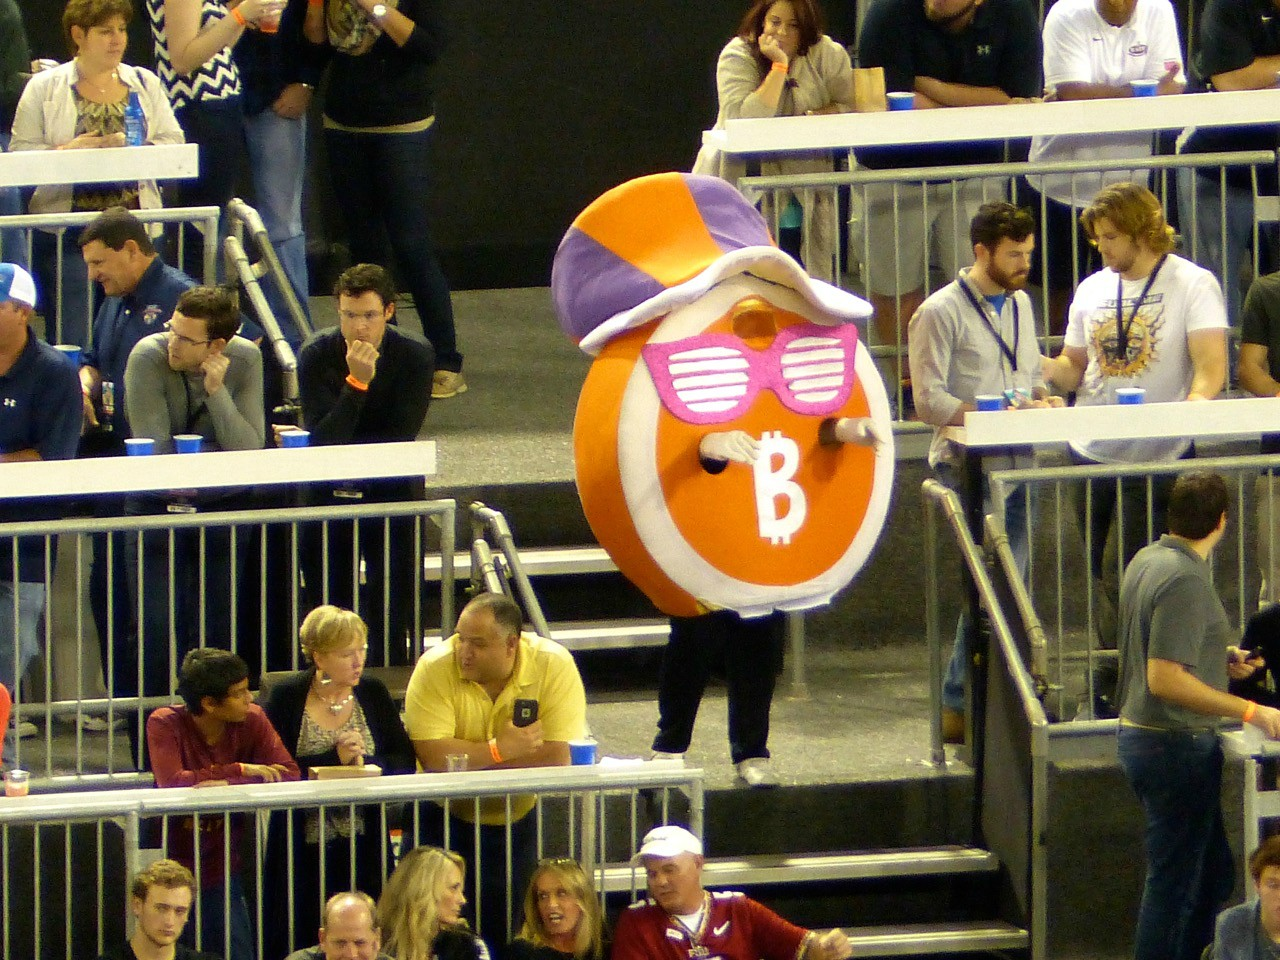 The Bitcoin Bowl really did happen and we had someone at the game.